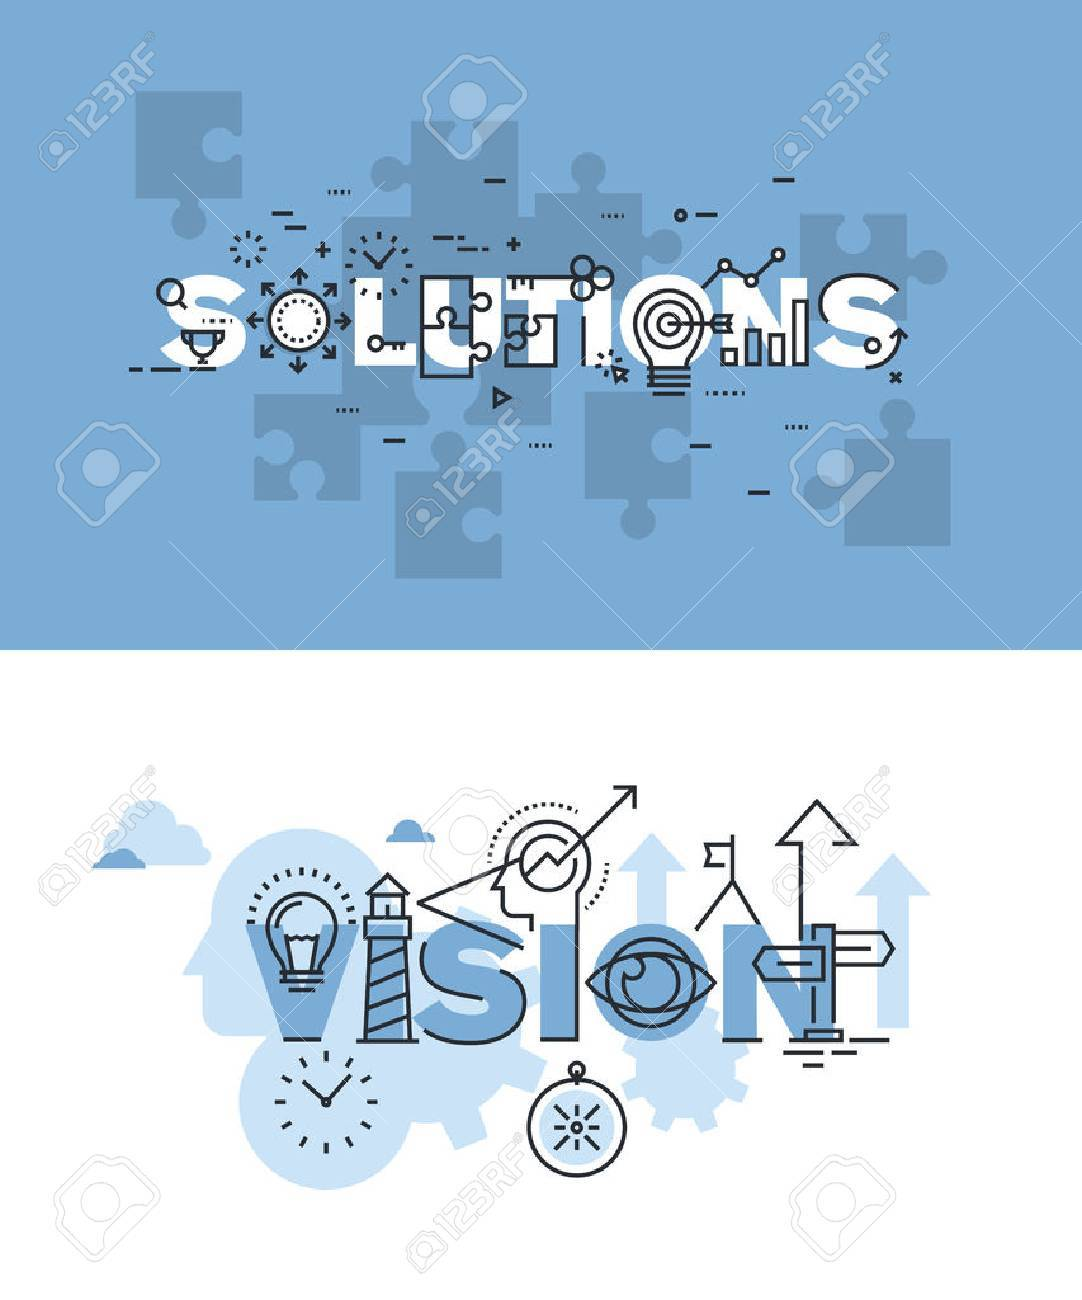 Set of modern vector illustration concepts of words solutions and vision. Thin line flat design banners for website and mobile website, easy to use and highly customizable. - 51293348